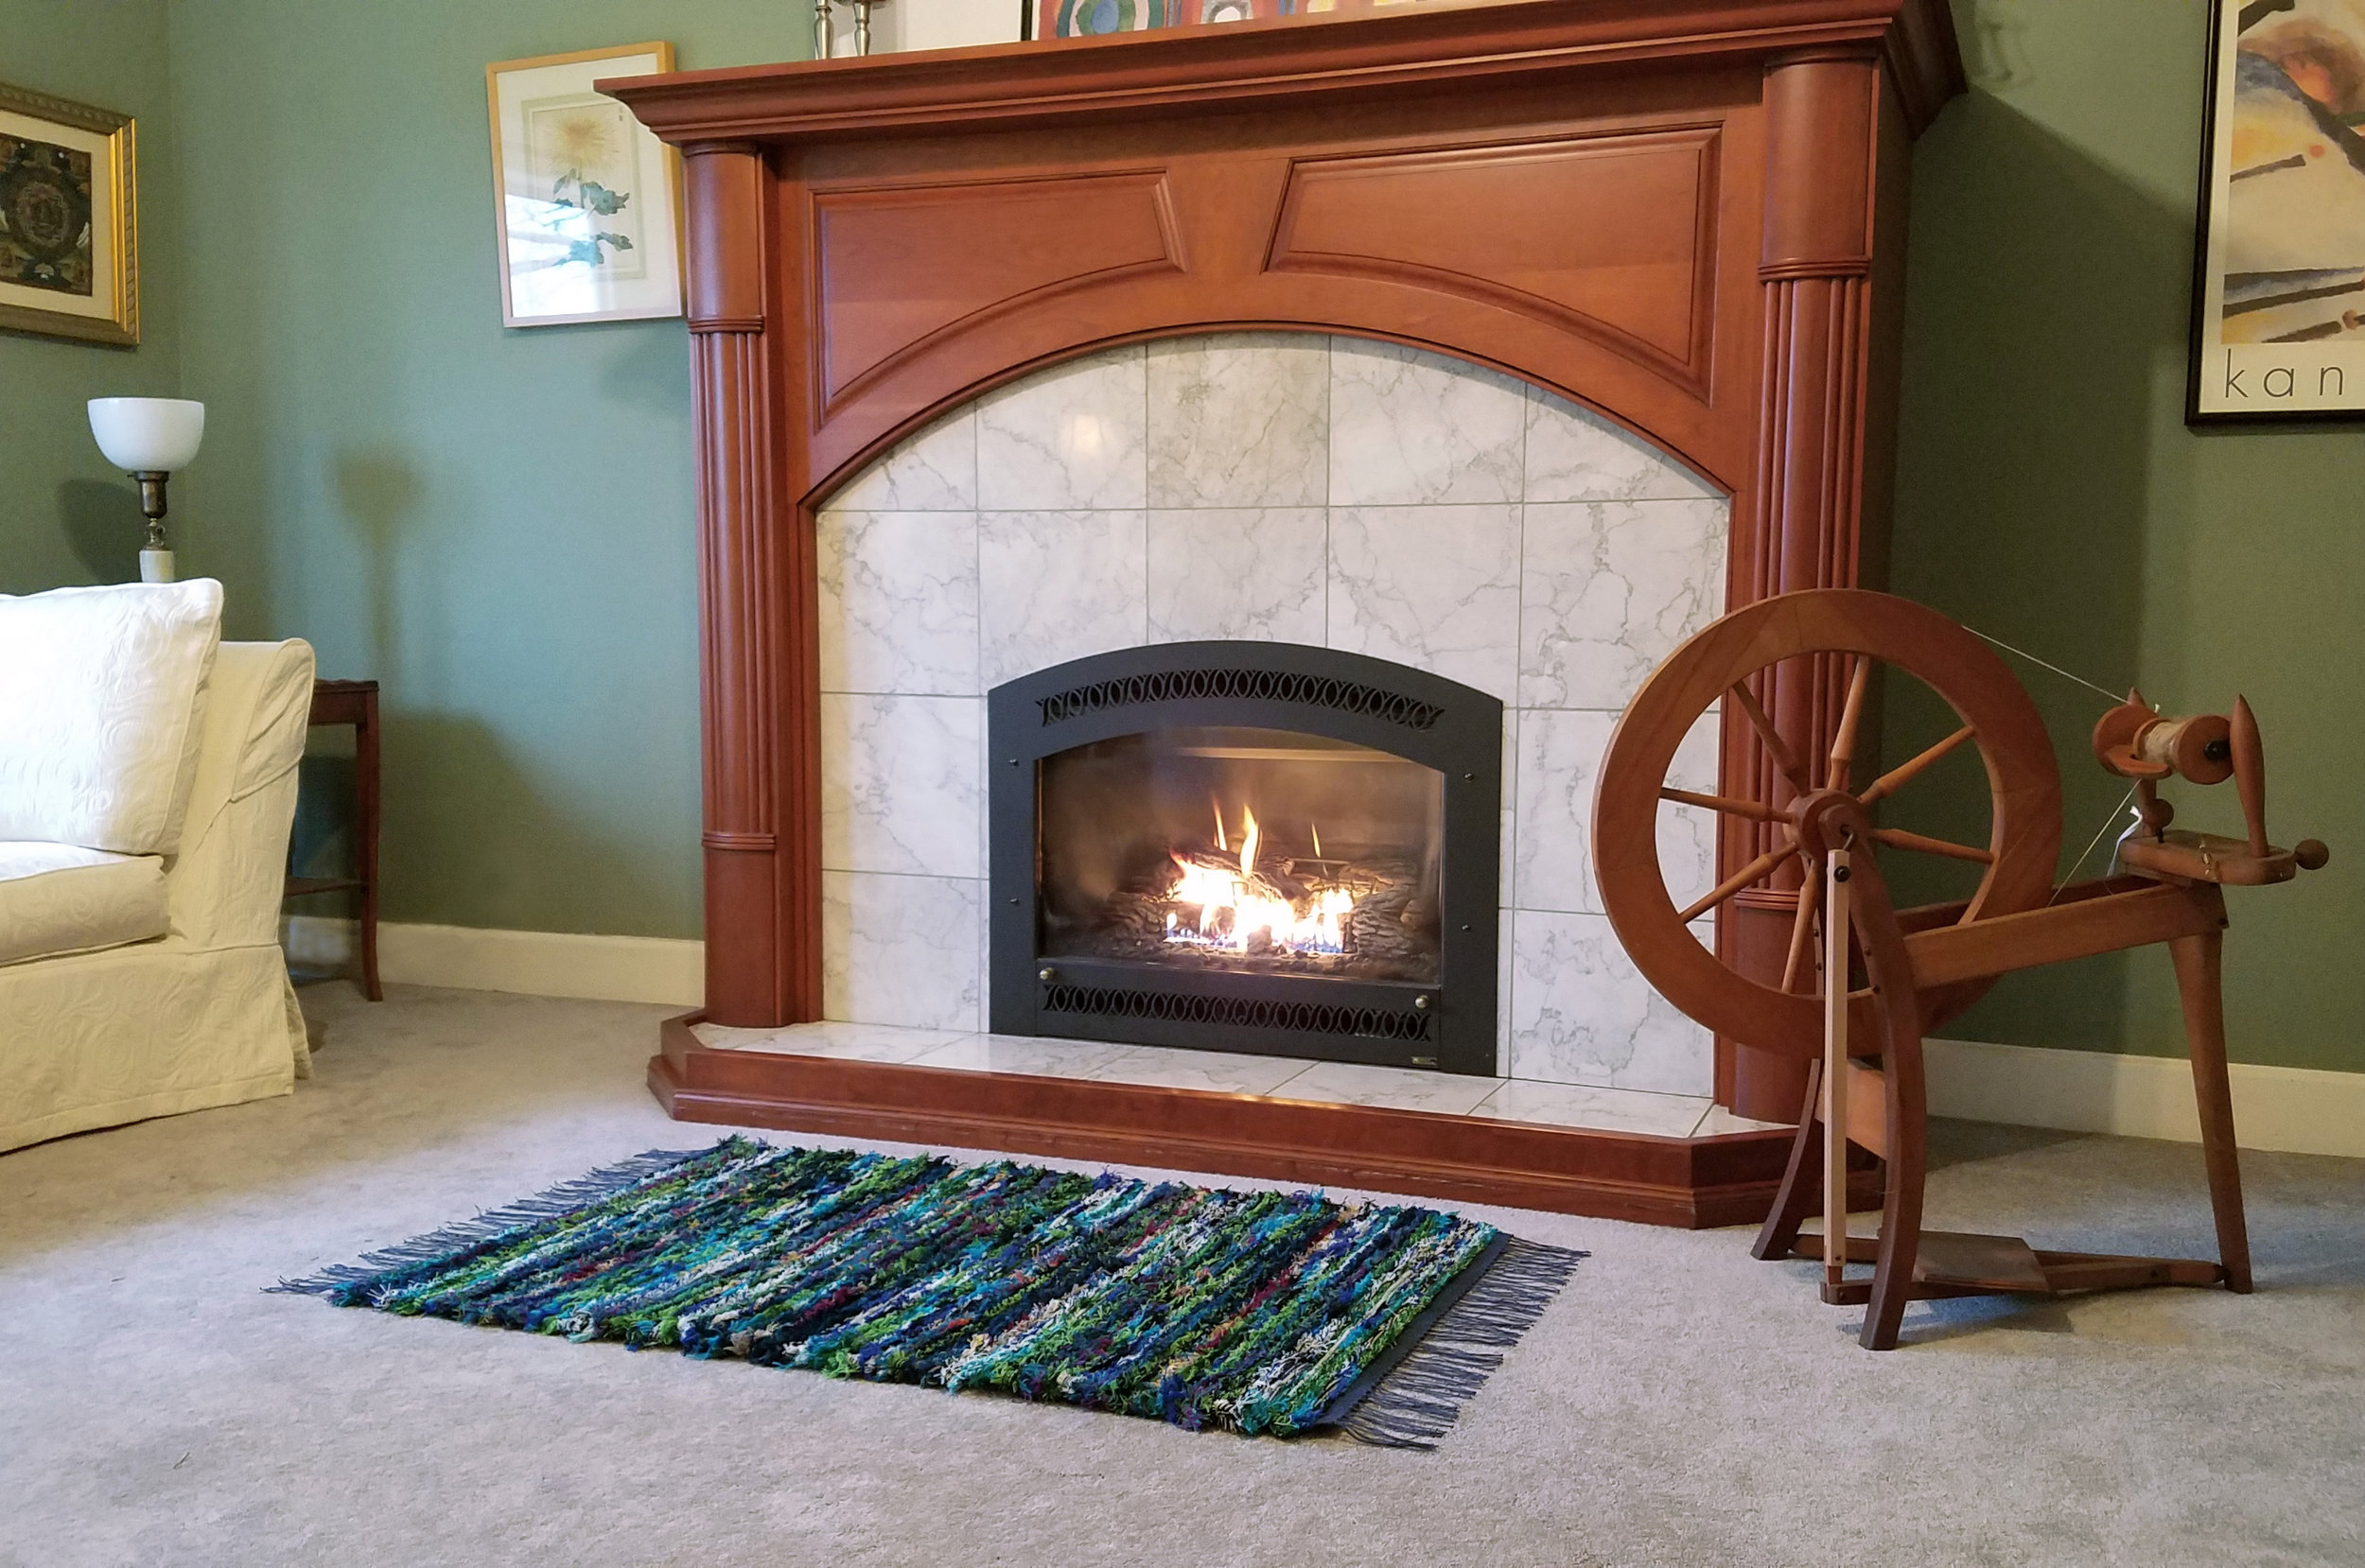 KMarty_fireplace-rug_300dpi.jpg